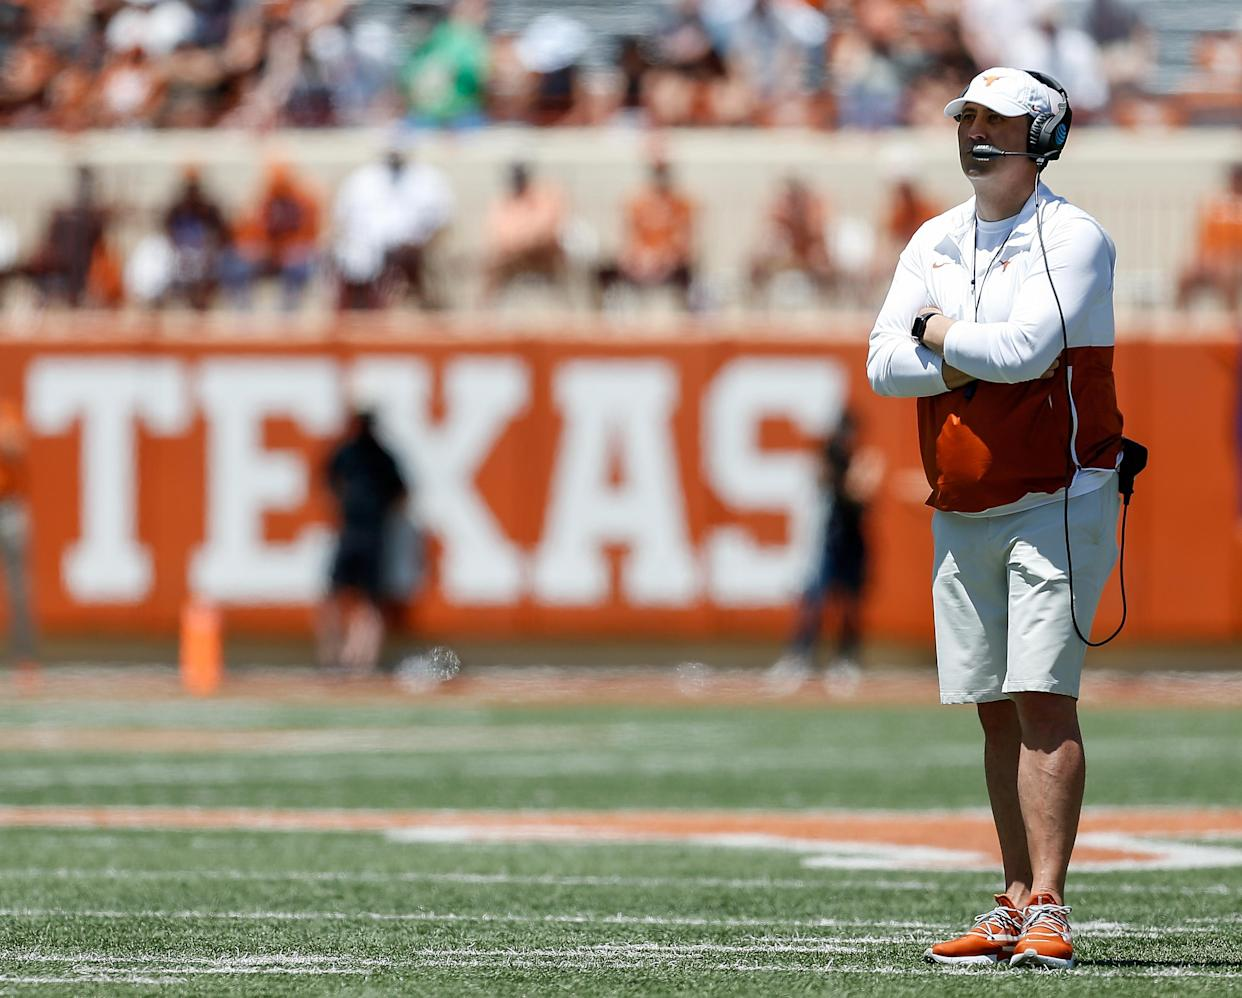 AUSTIN, TEXAS - APRIL 24: Head coach Steve Sarkisian of the Texas Longhorns reacts during the Texas Football Orange-White Spring Game at Darrell K Royal-Texas Memorial Stadium on April 24, 2021 in Austin, Texas. (Photo by Tim Warner/Getty Images)